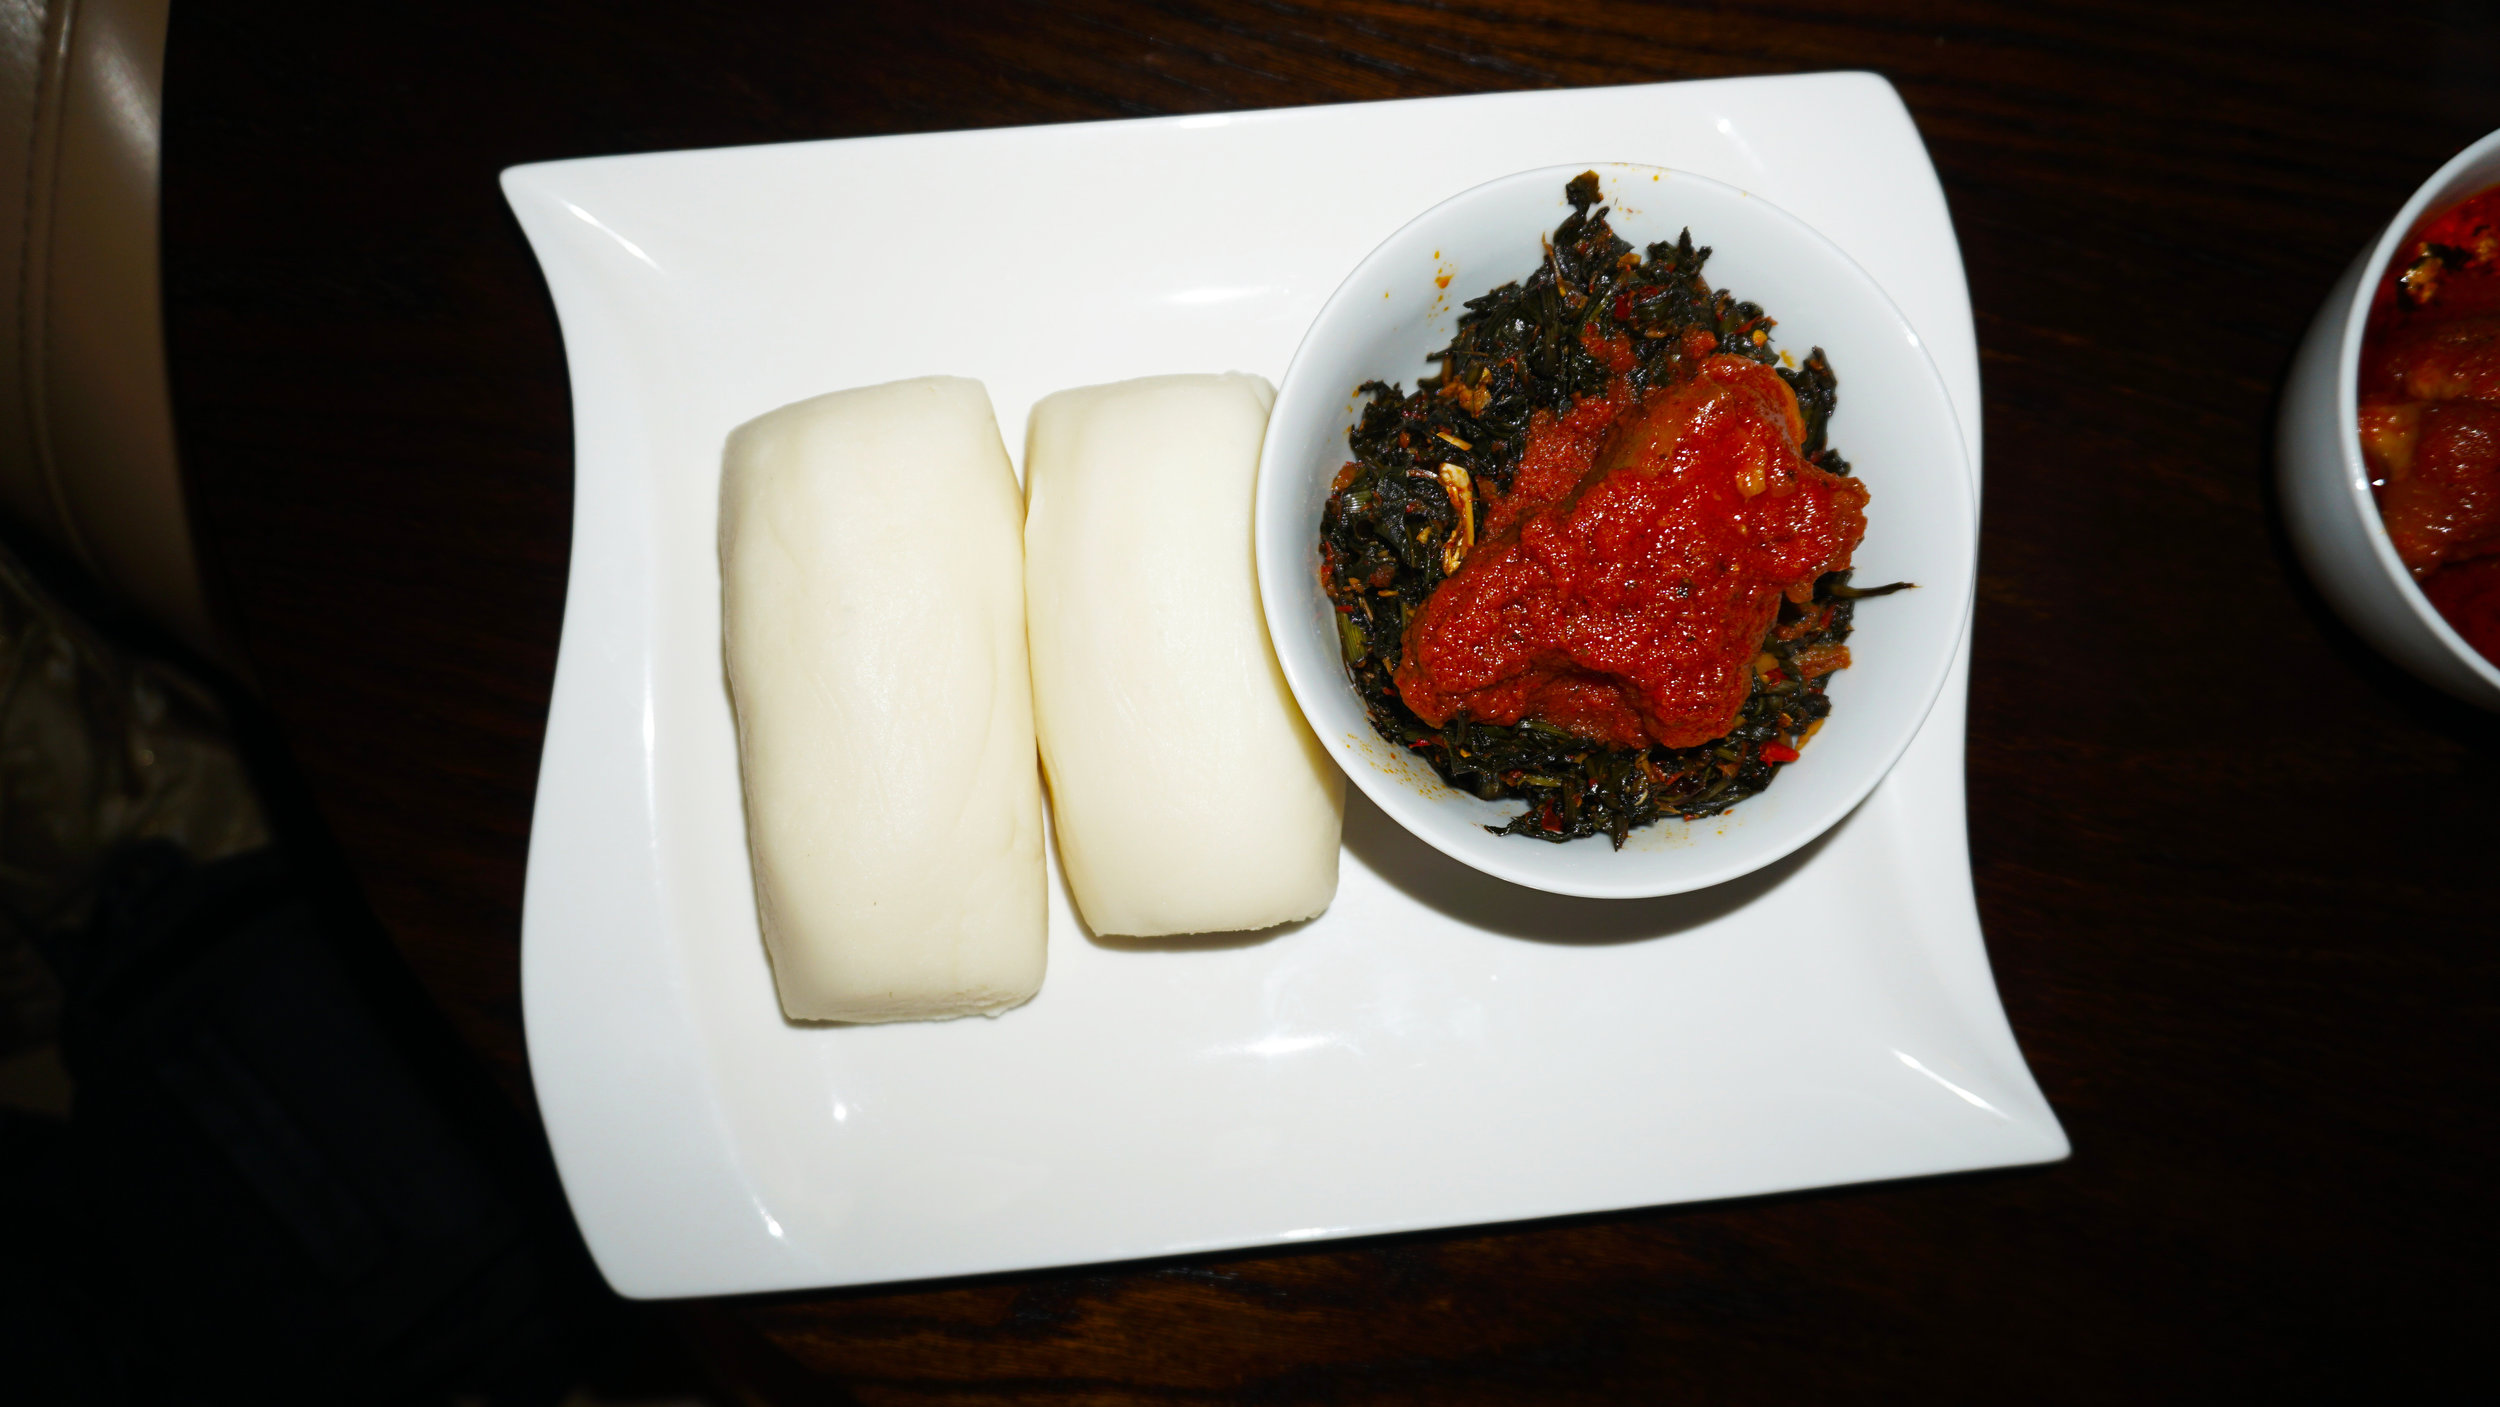 Spinach (Efo Riro) Sauce With Pounded Yam Family Meal $45.99  Large serving of spinach soup (Efo Riro), with 6 pieces of chicken and 8 wraps of pounded yam.  Spinach sauteed with tomato and assorted pepper blends. Garnished with assorted meats.  Bowl Size is 2 inches deep and 9 inches wide